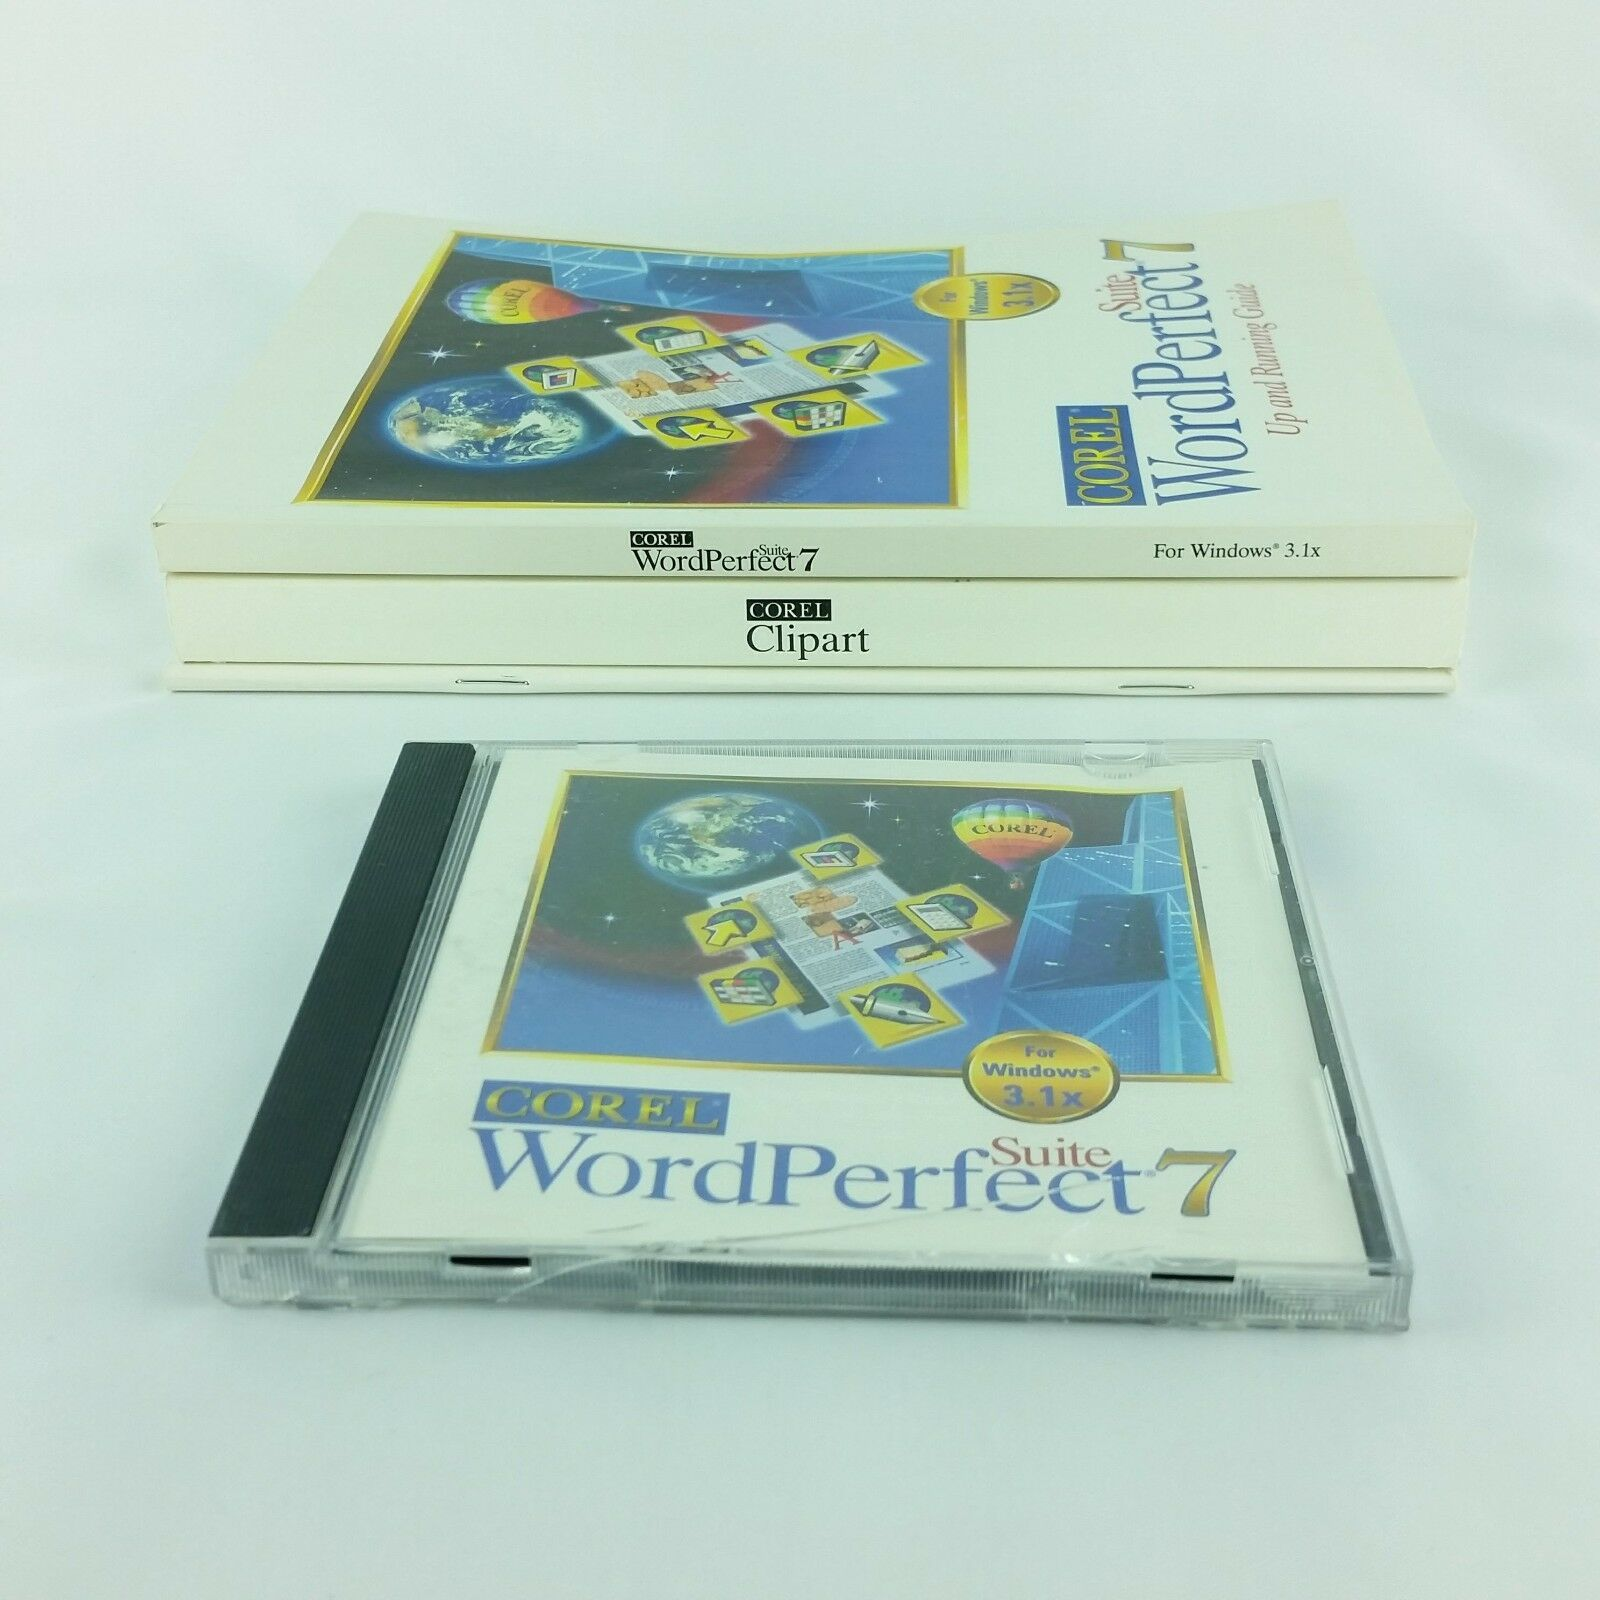 Corel WordPerfect 7 Suite Windows 3.1x  Books and CD Vintage Quattro Pro Paradox image 5